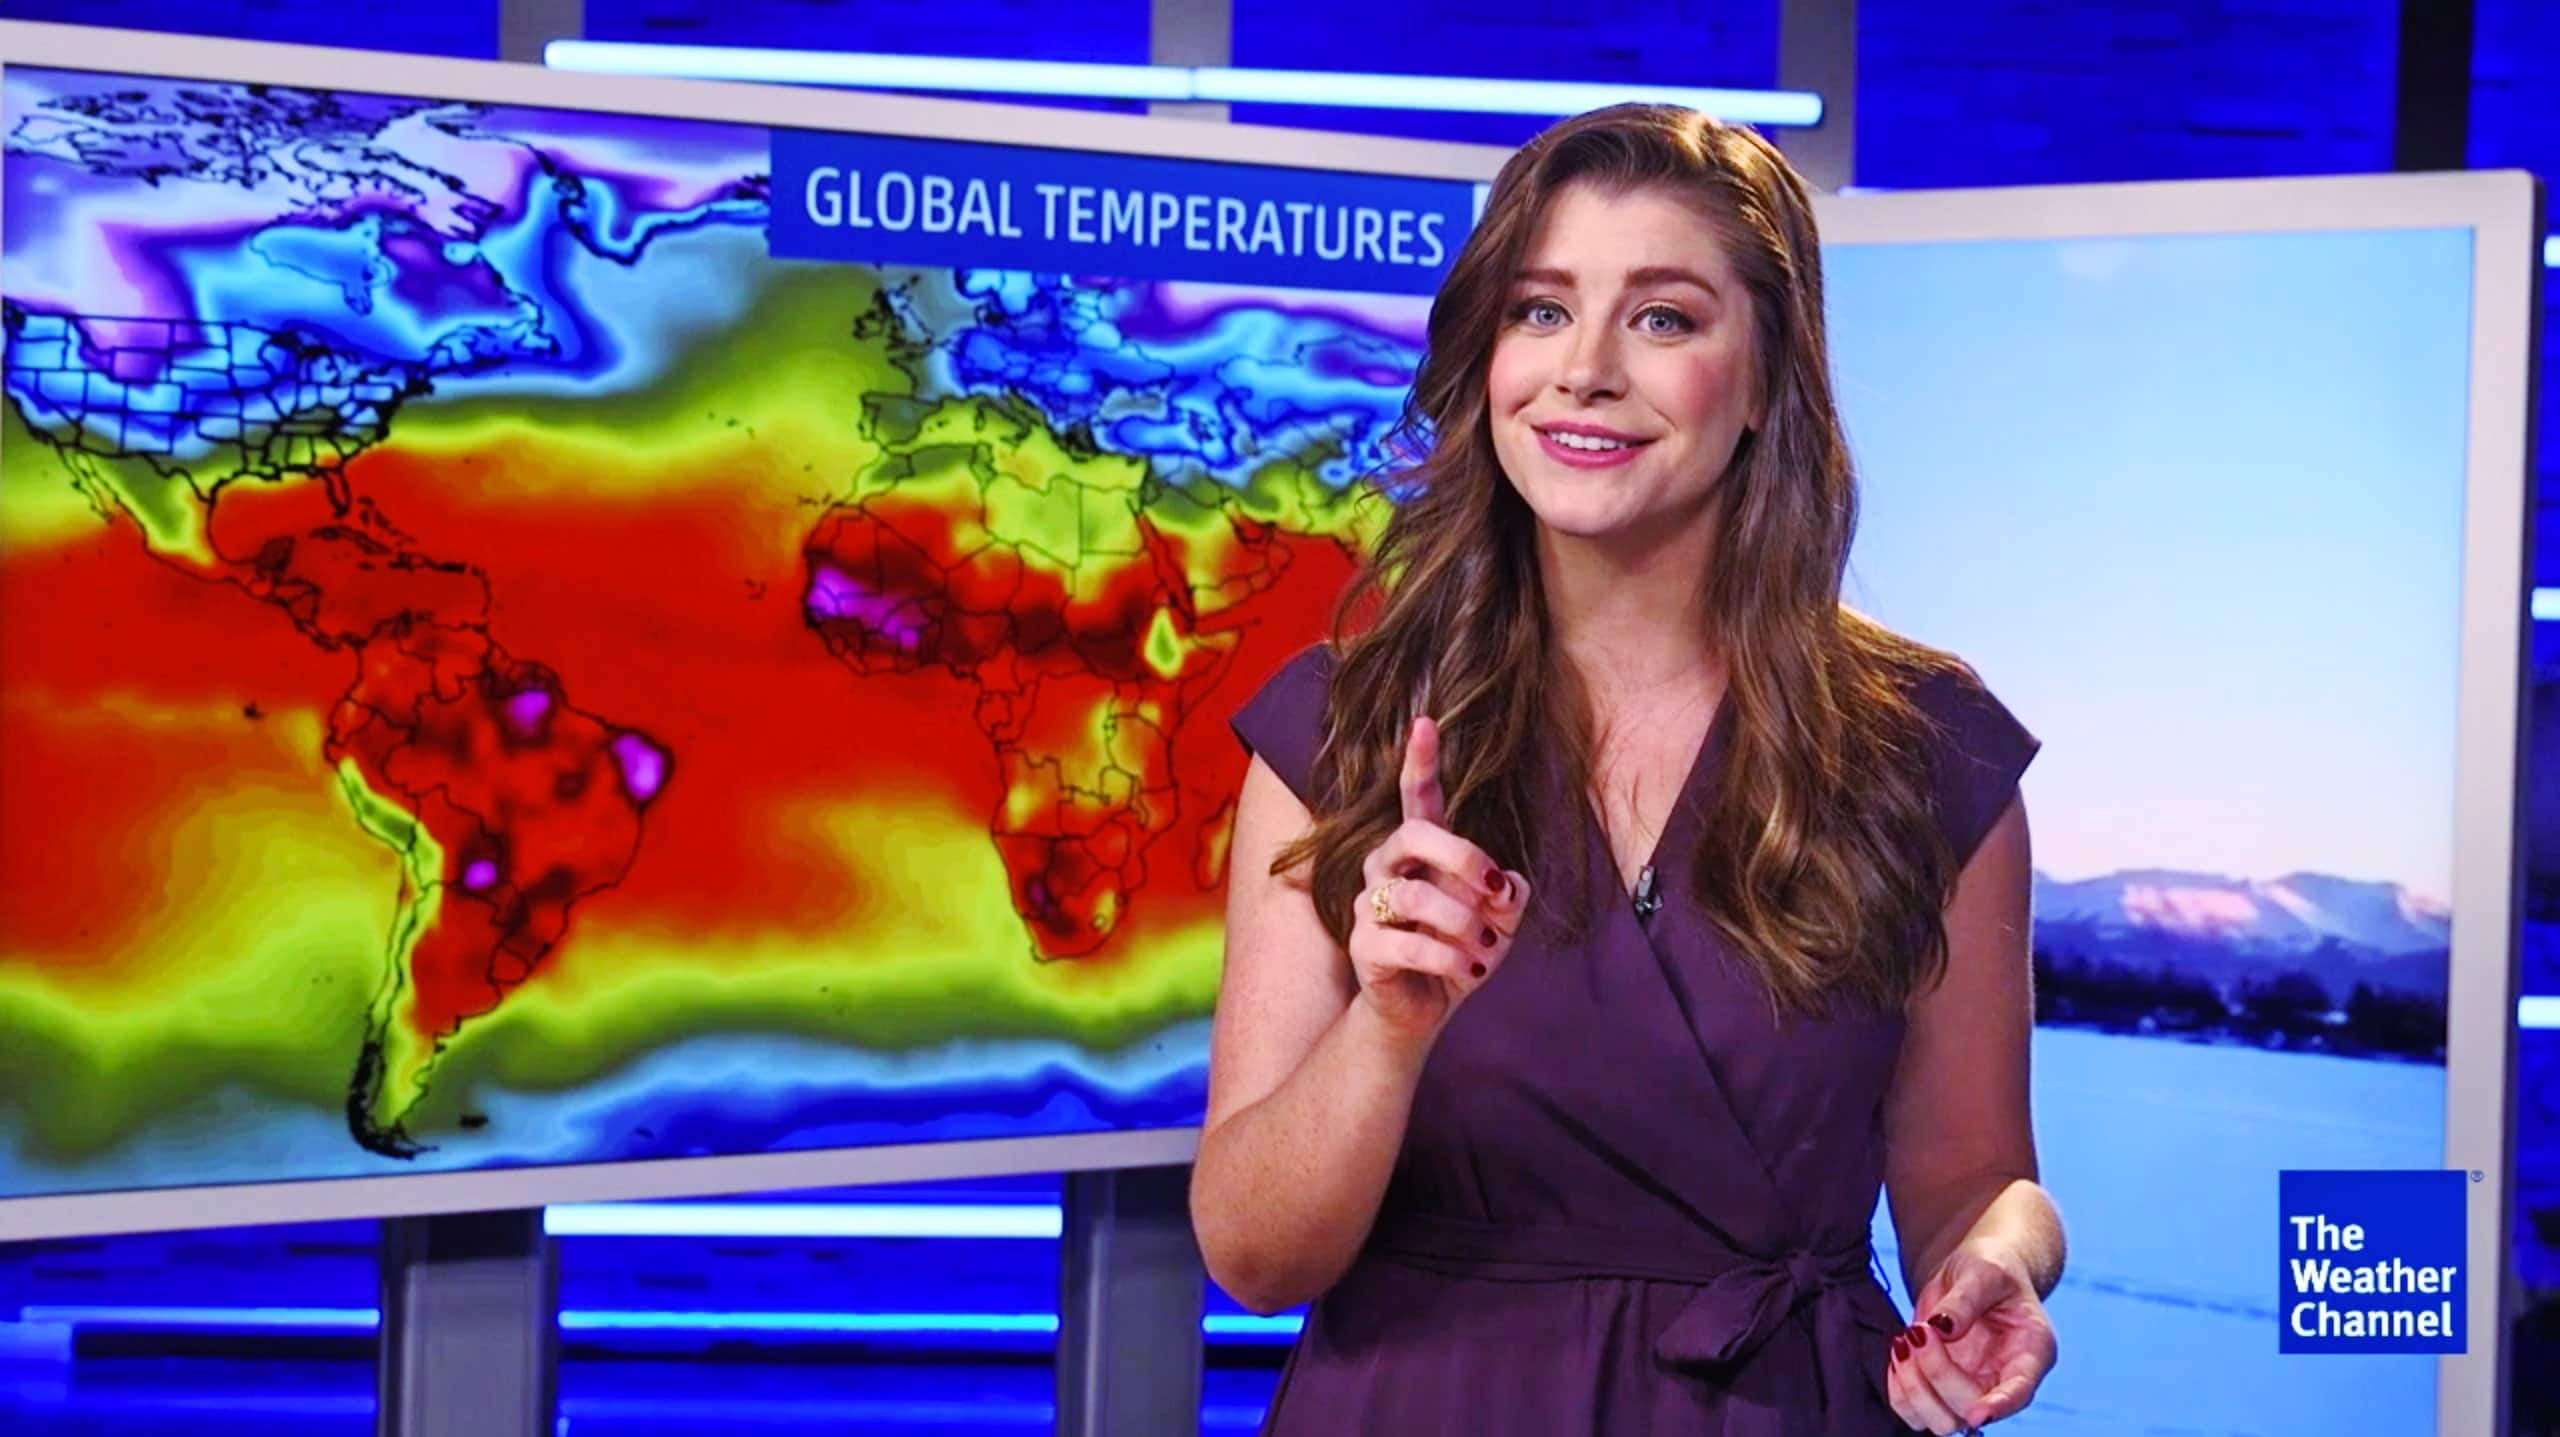 The Weather Channel Just Put Trump's Propaganda On Blast. Yes, The Weather Channel